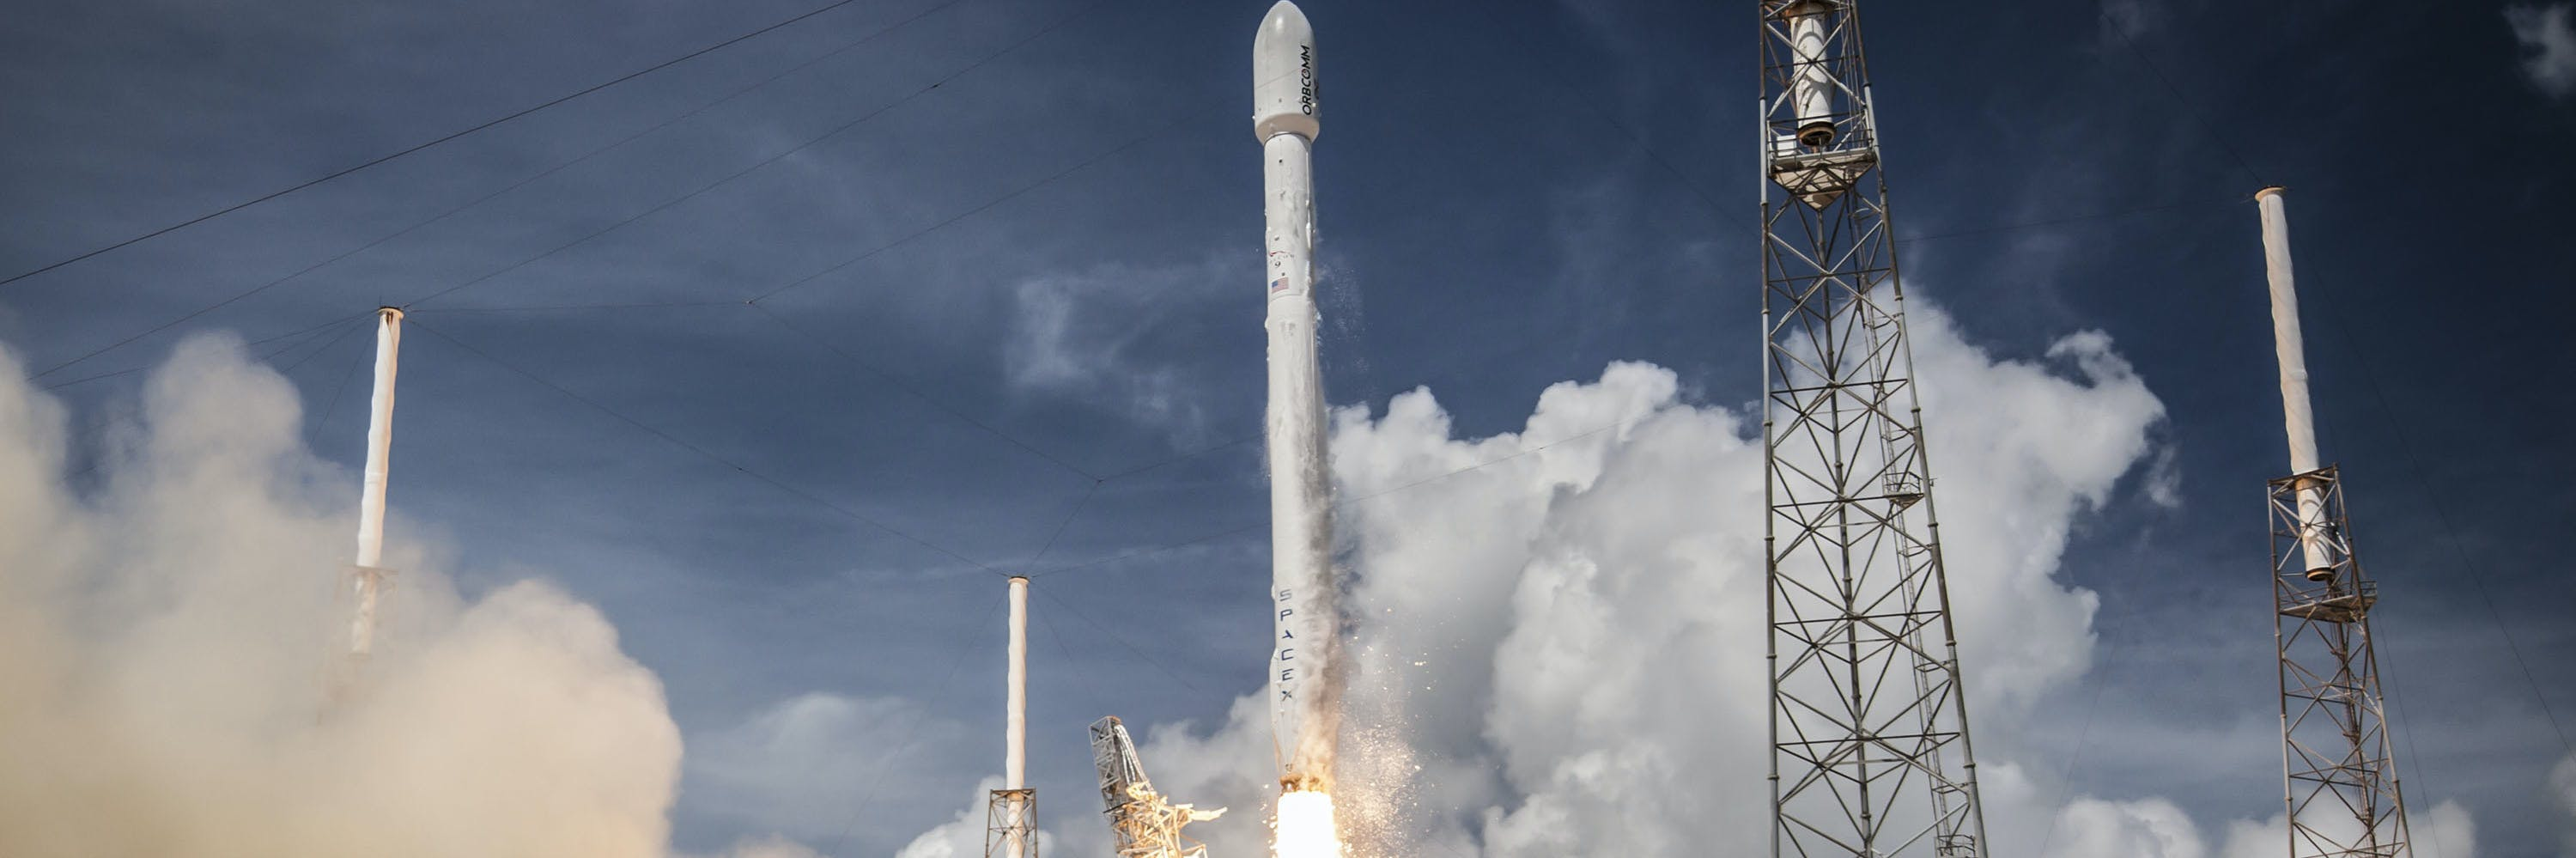 In this handout provided by the National Aeronautics and Space Administration (NASA), SpaceX's Falcon 9 rocket launches the ORBCOMM OG2 Mission 1 on July 14, 2014 in  Cape Canaveral, Florida.